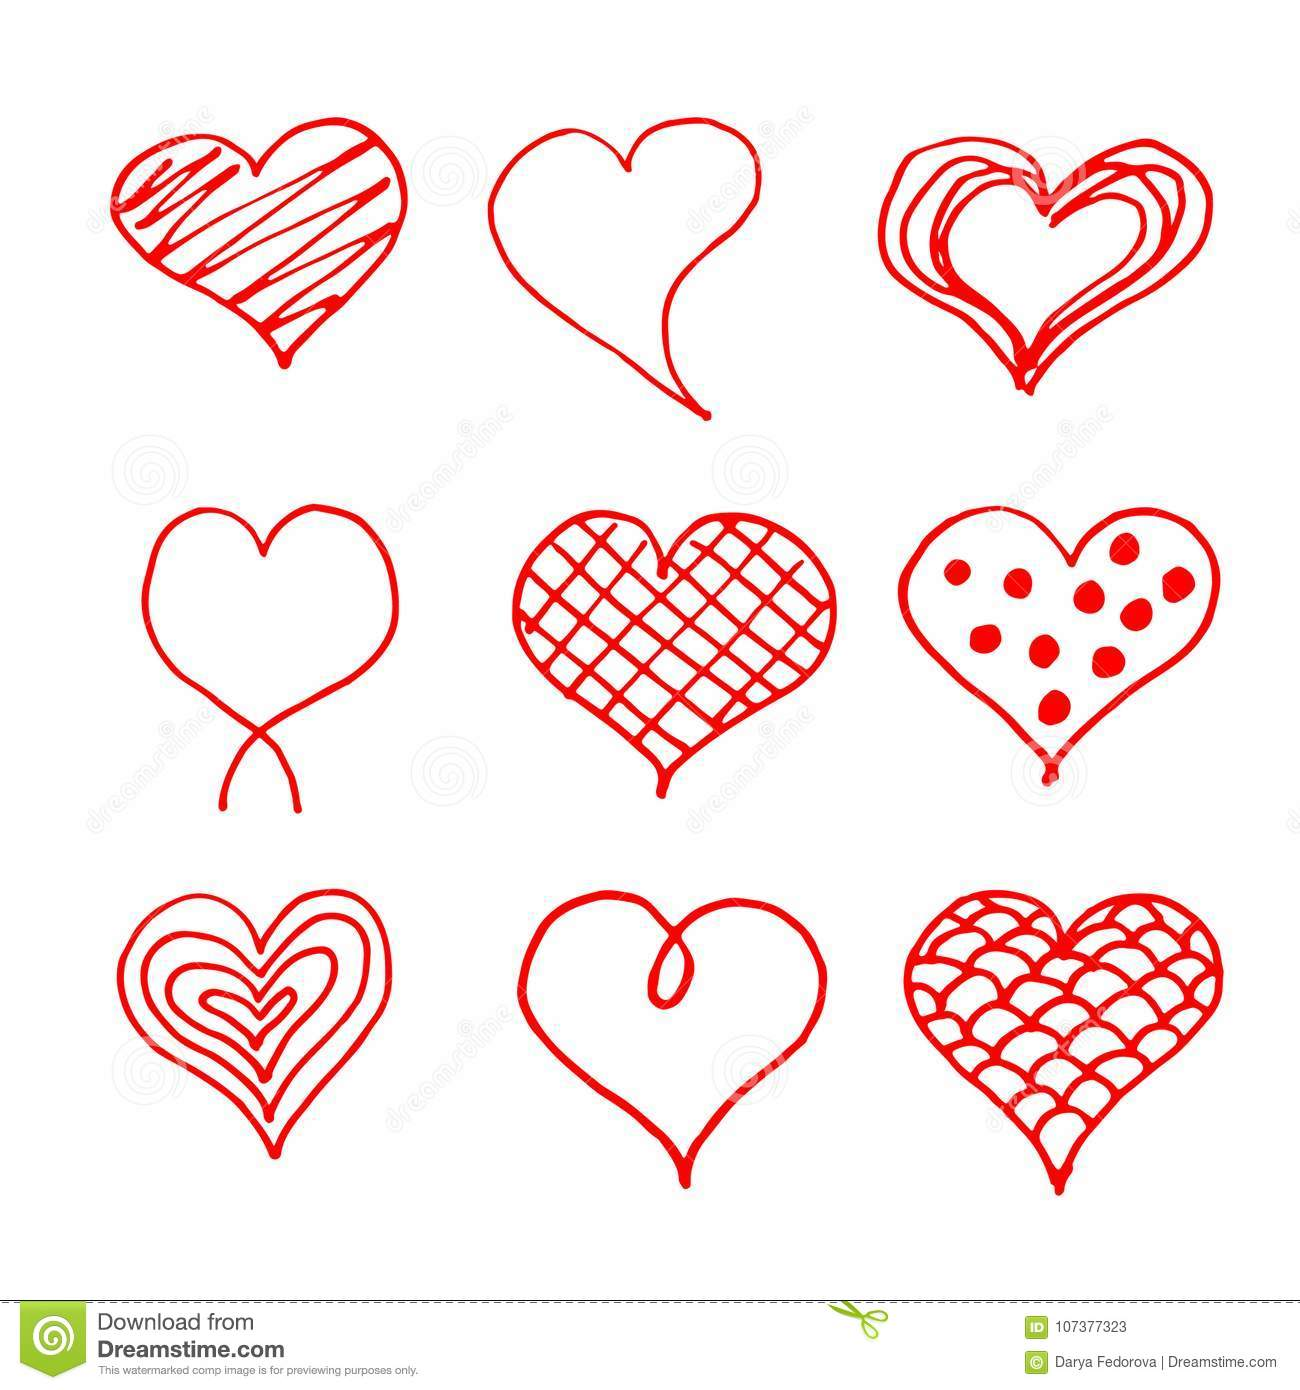 68bdacc2fc1 Valentines day hearts doodles set. Romantic stickers collection. Hand drawn  effect vector.